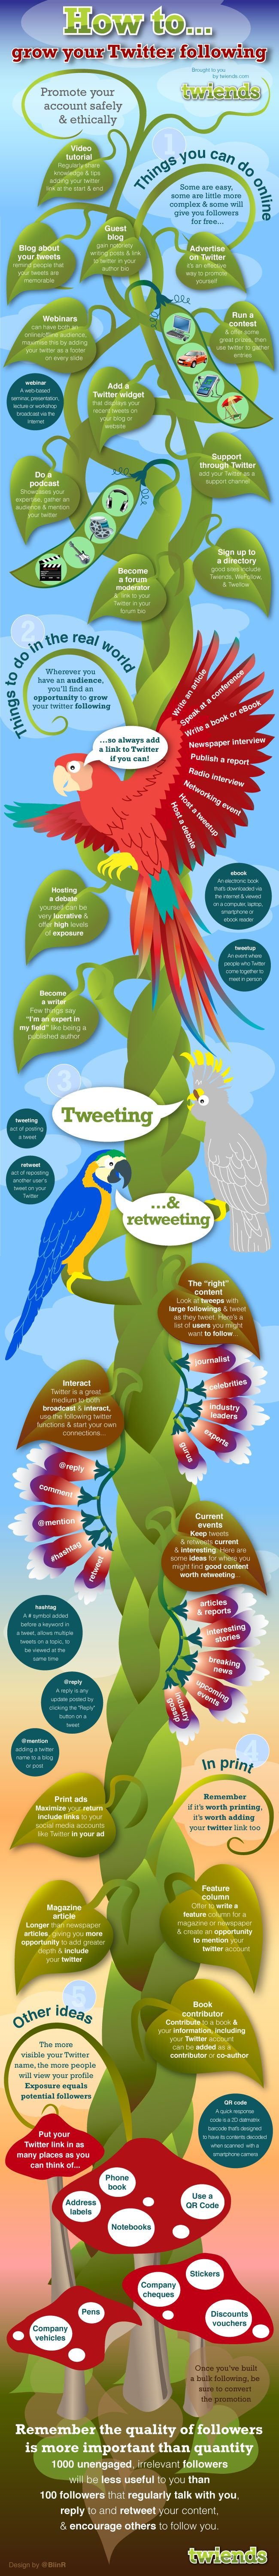 Pretty tropical infographic on gaining twitter followers. Read it for the parrots!